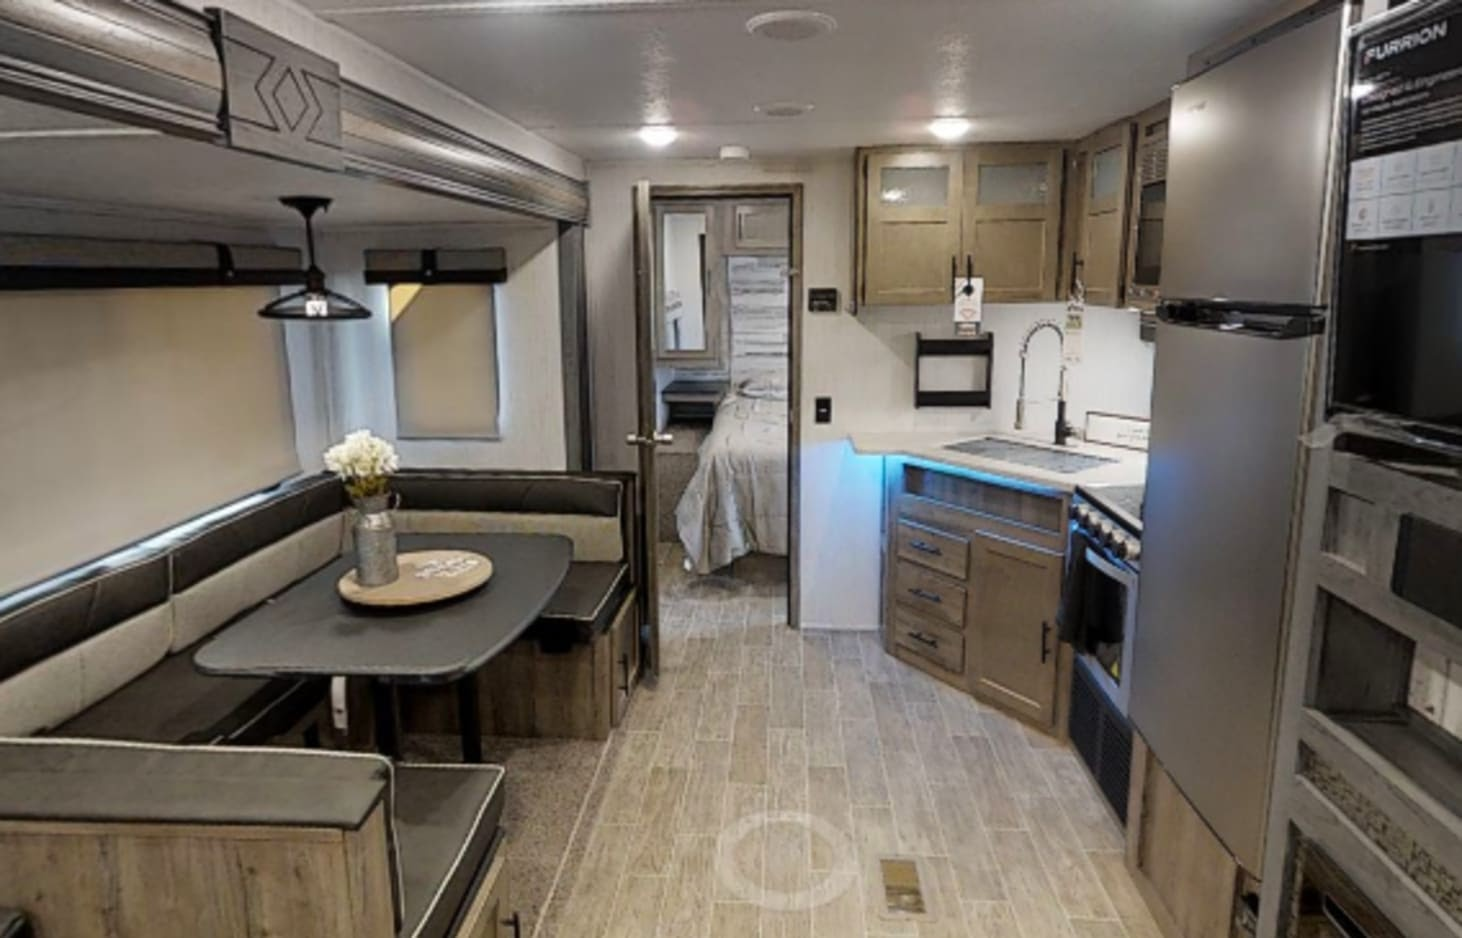 glamping in tx - This 2021 Palomino Puma sleeps 9 and can be delivered and set up within 25 miles for just $75.